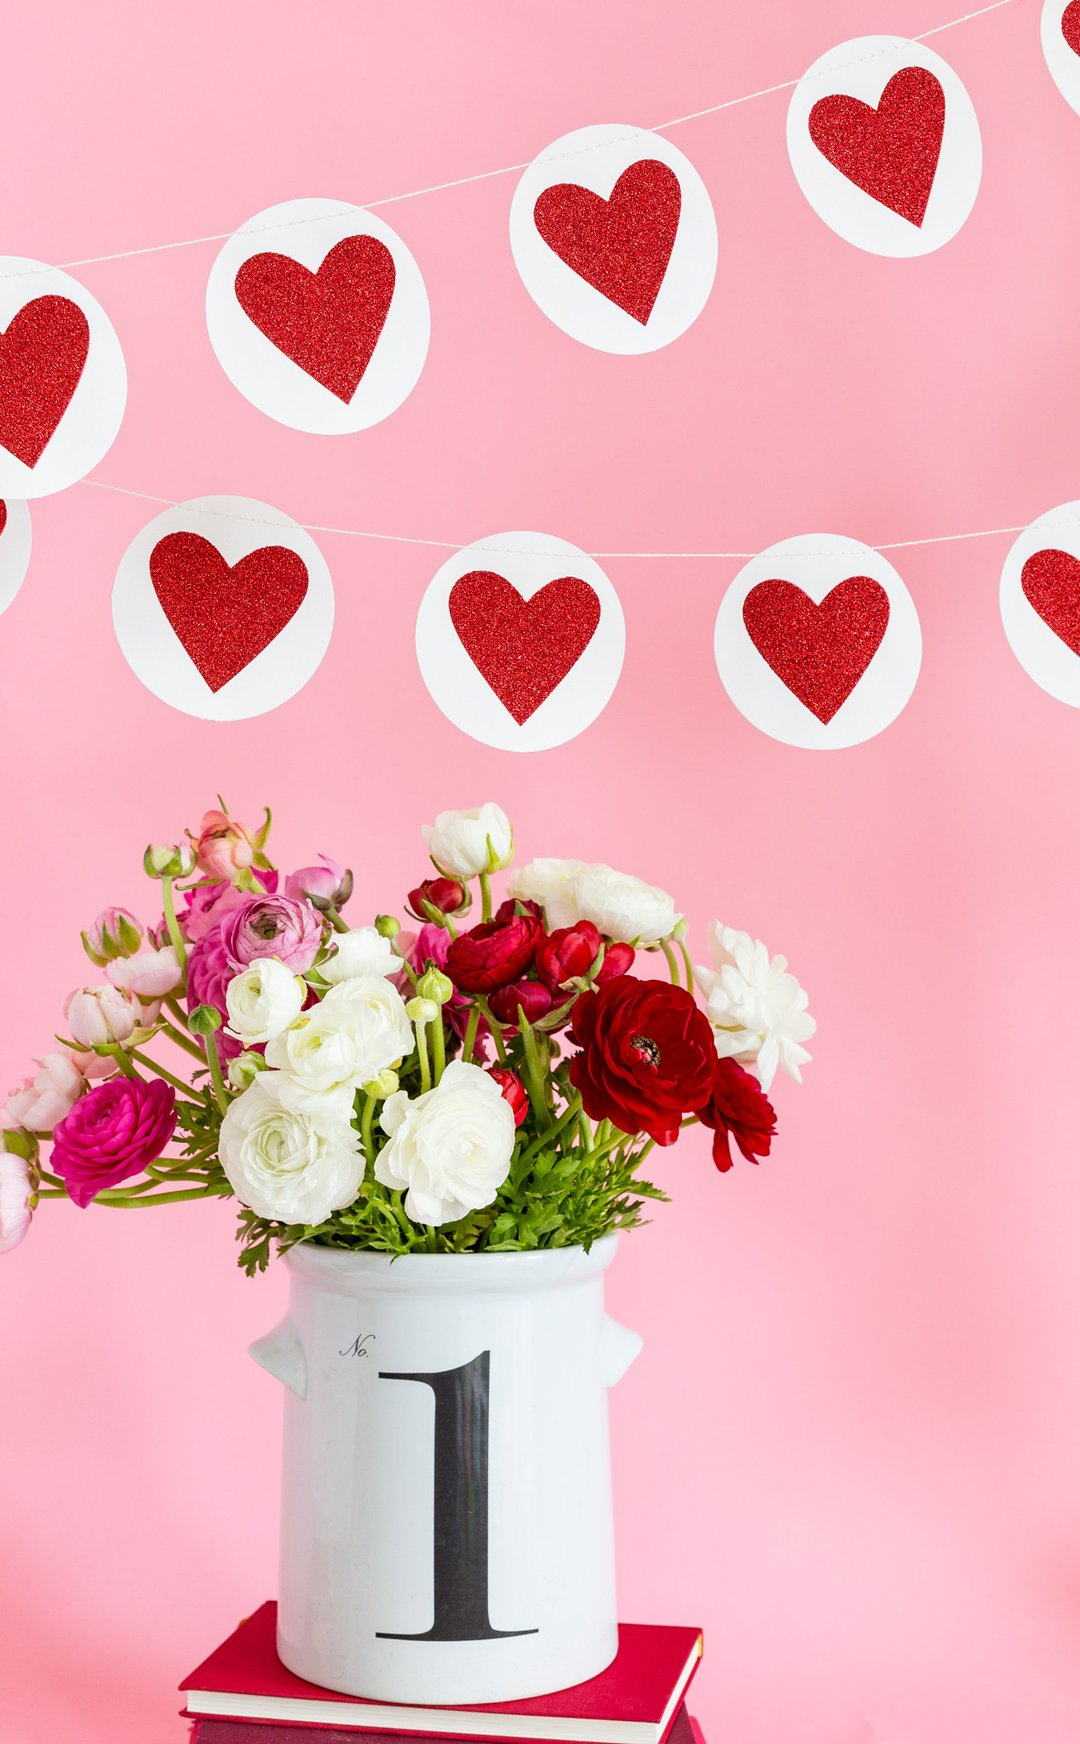 VALENTINE HEART & CIRCLE HEART BANNER SET